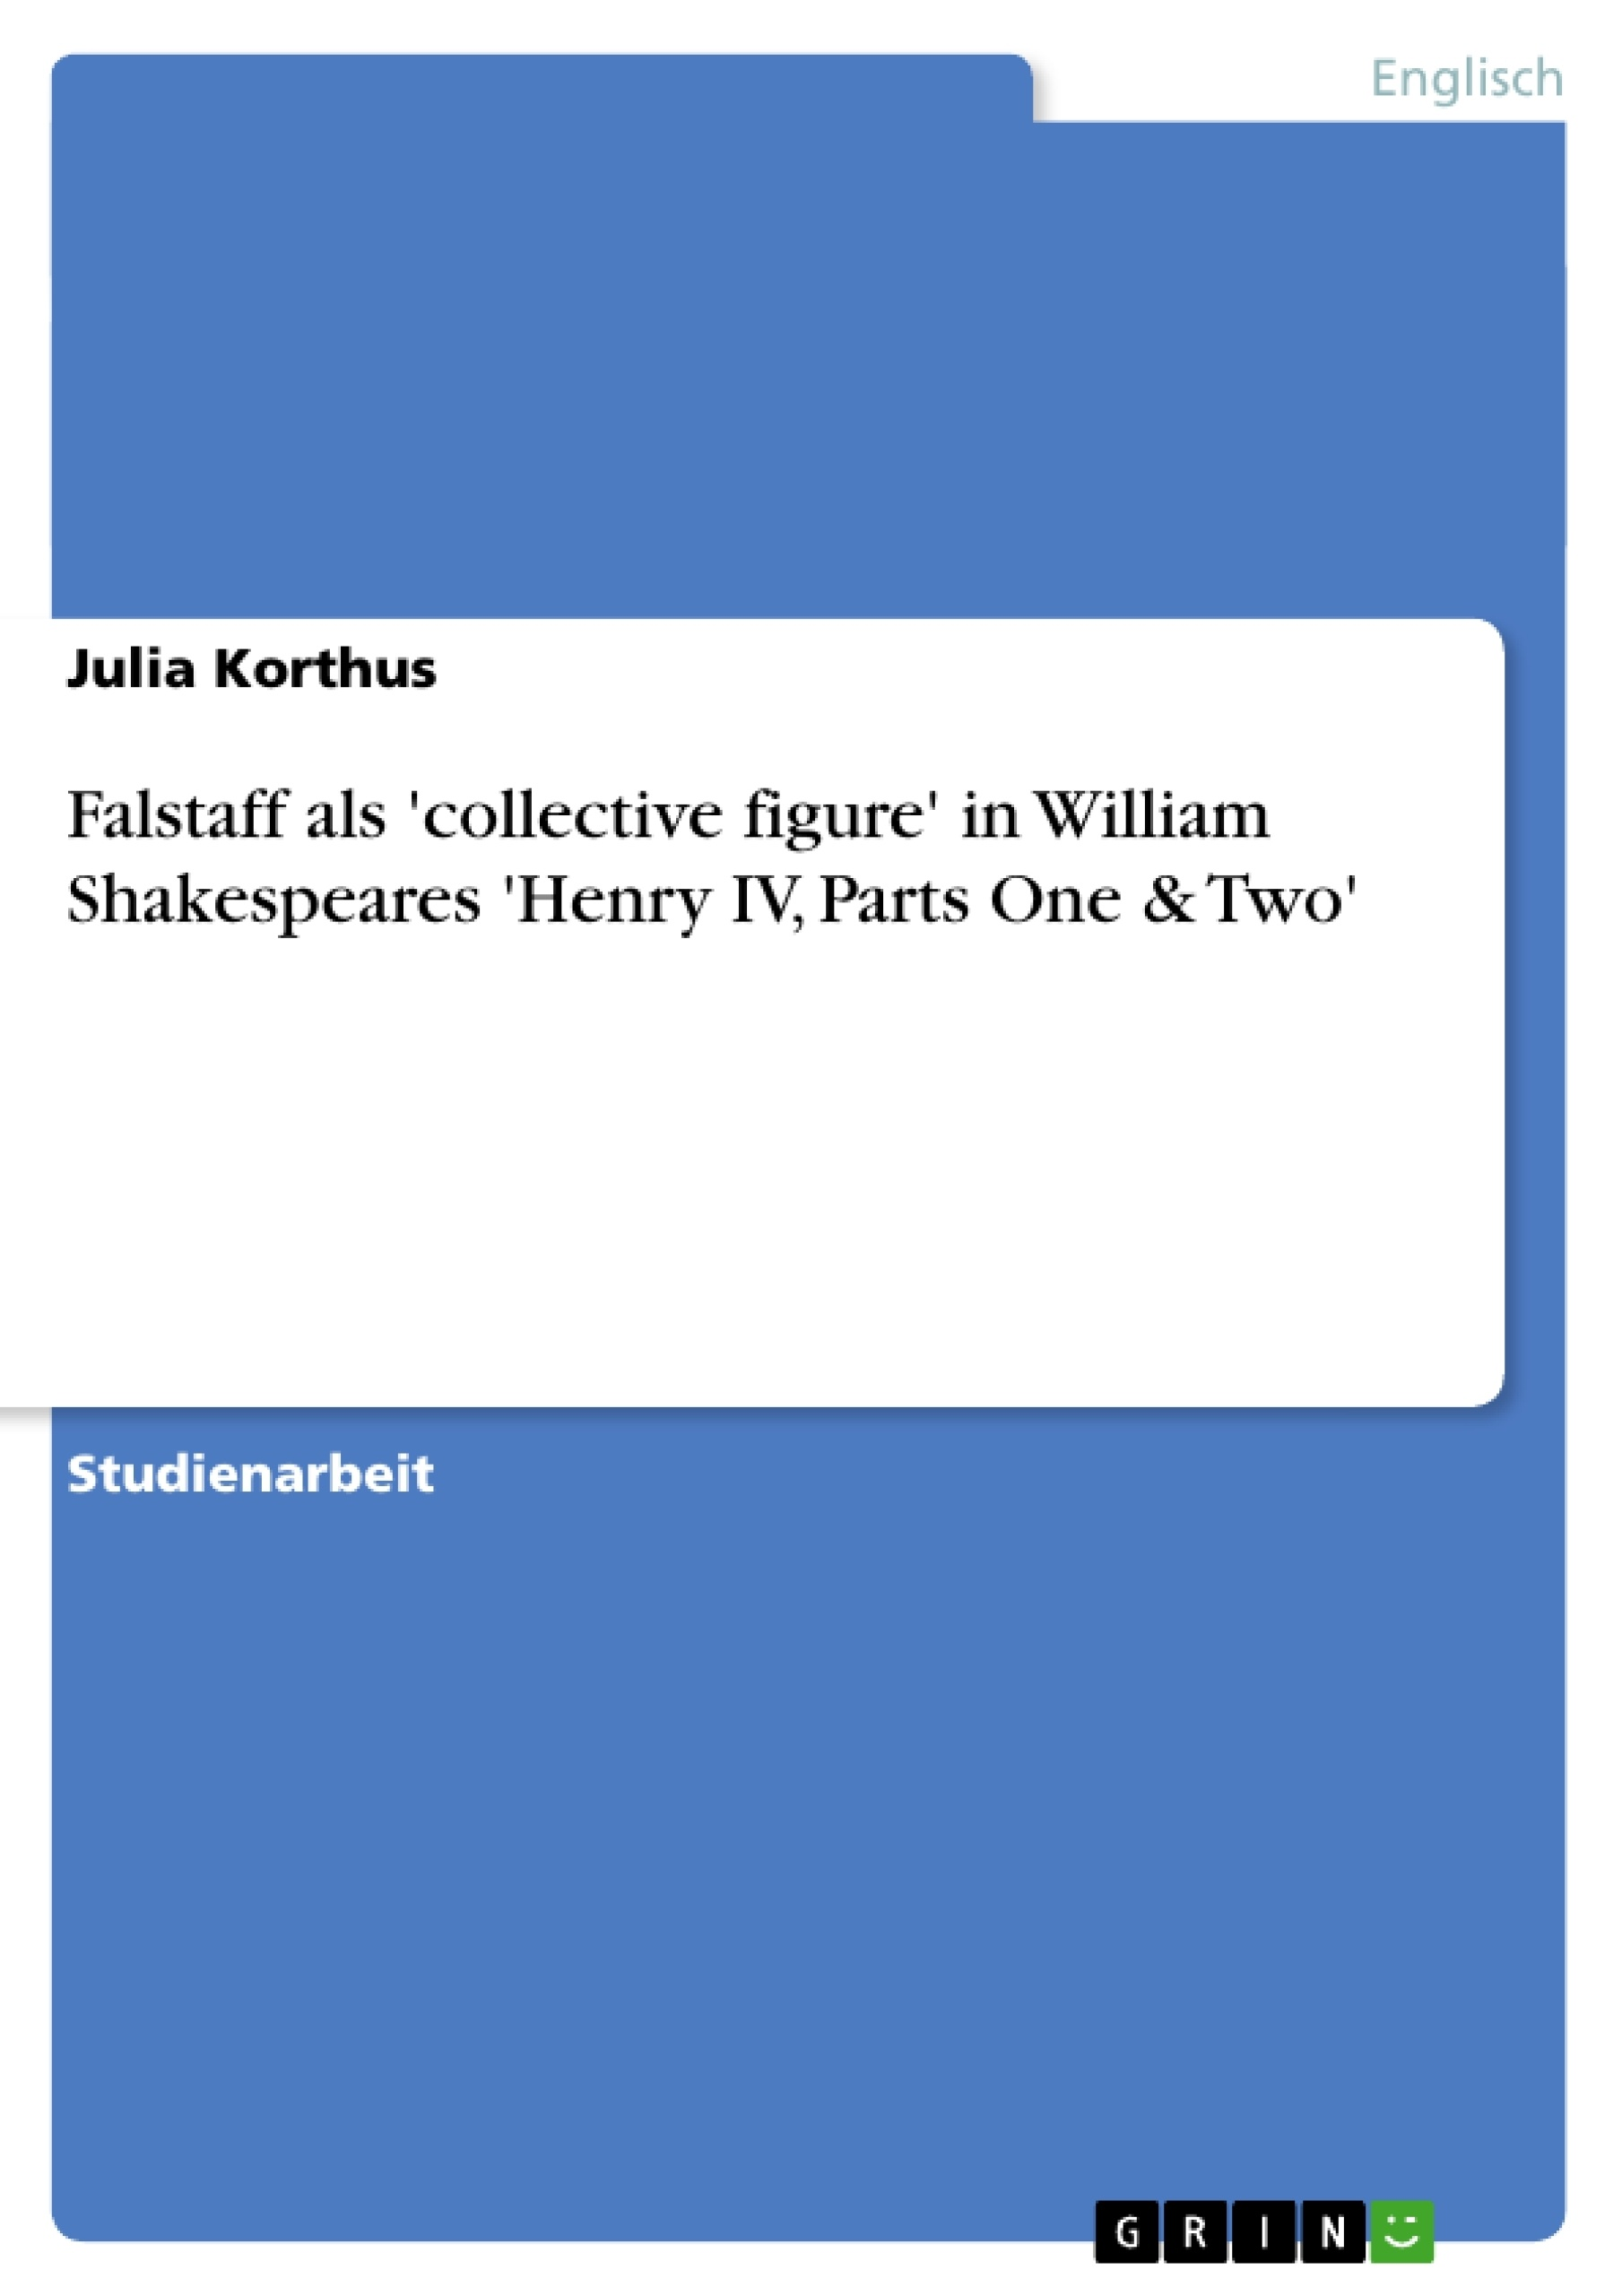 Titel: Falstaff als 'collective figure' in William Shakespeares 'Henry IV, Parts One & Two'